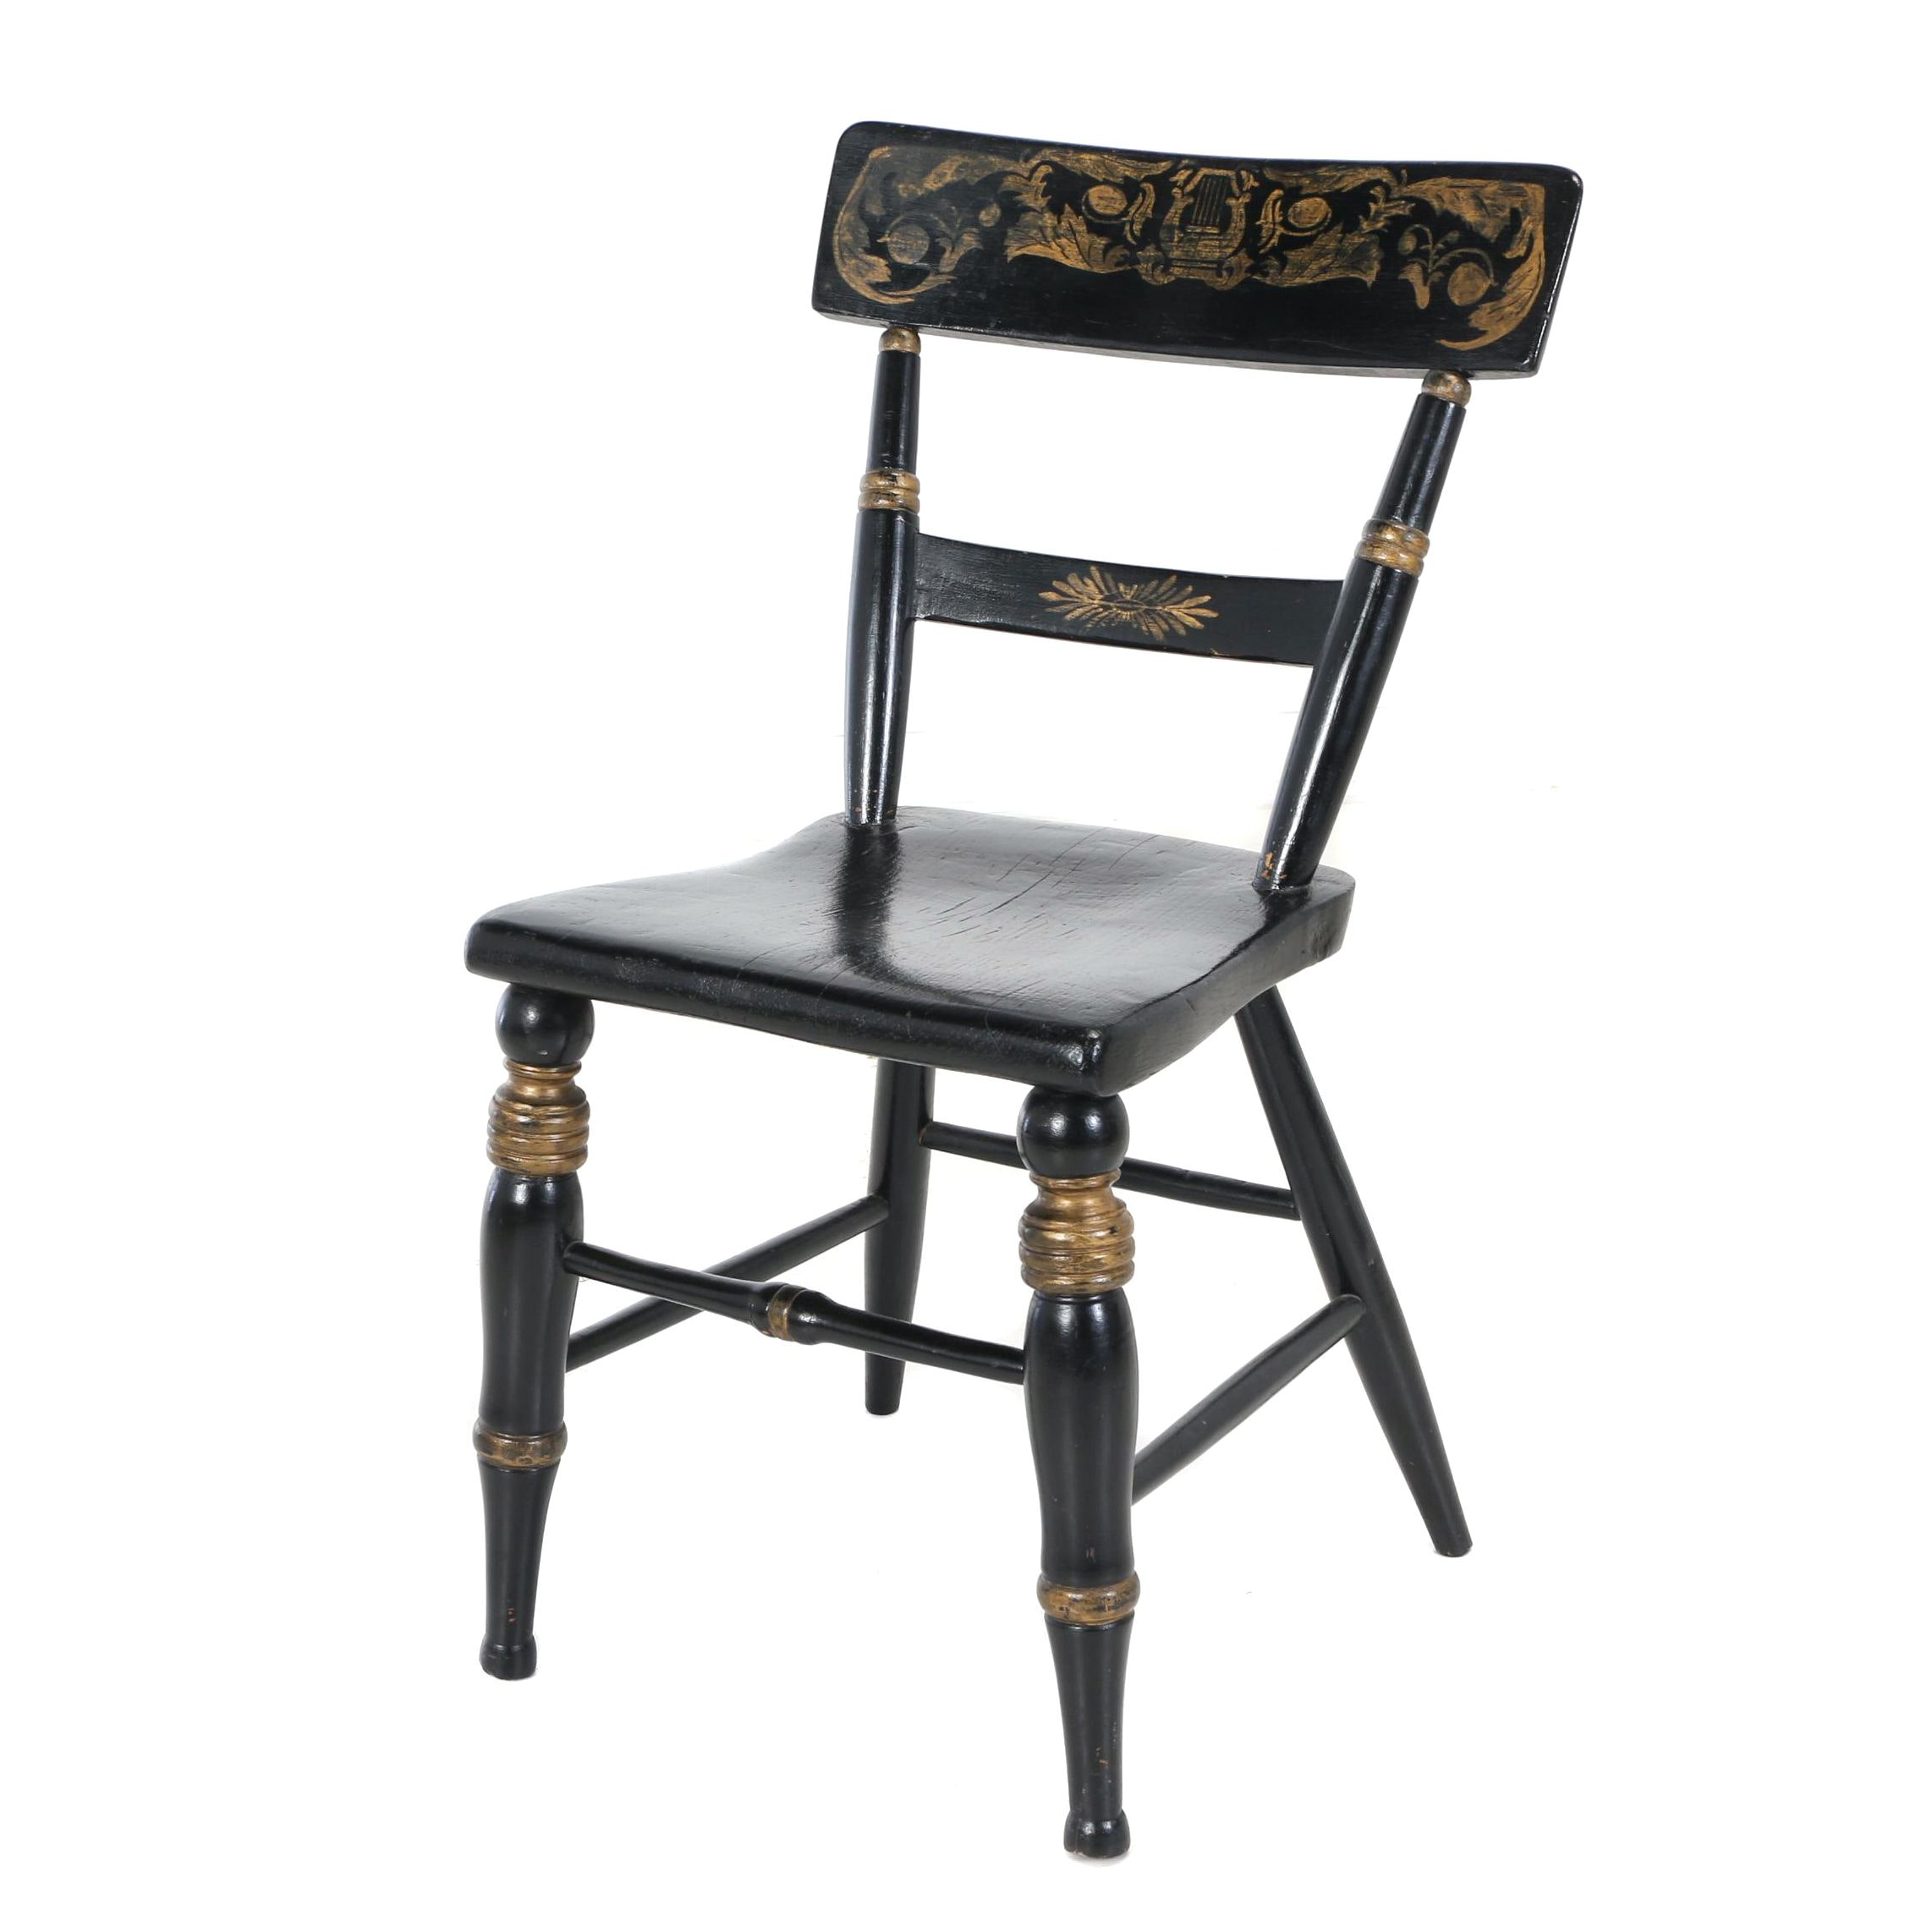 Late Federal Ebonized and Parcel-Gilt Side Chair, Possibly Baltimore, Circa 1830